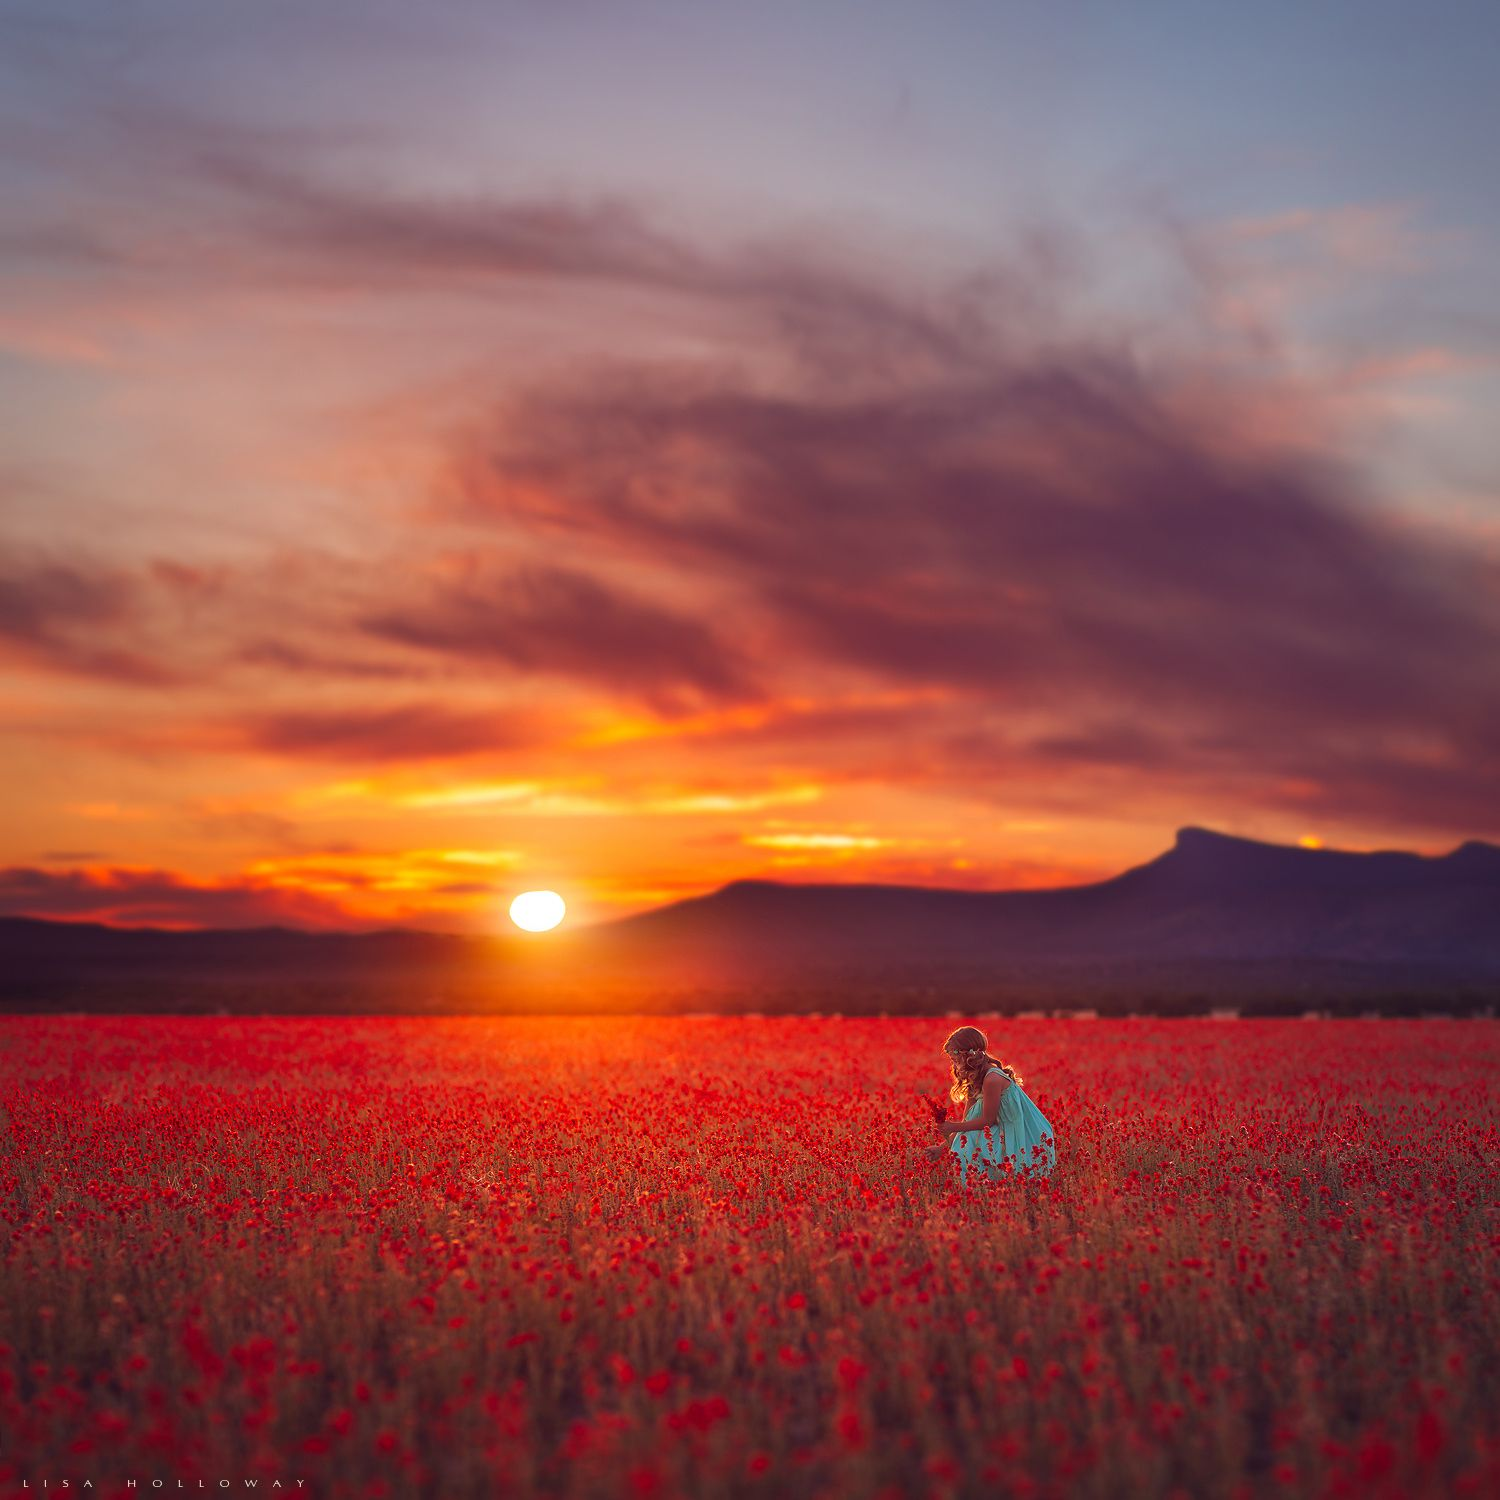 Field of Fire by Lisa Holloway - Photo 126013365 - 500px